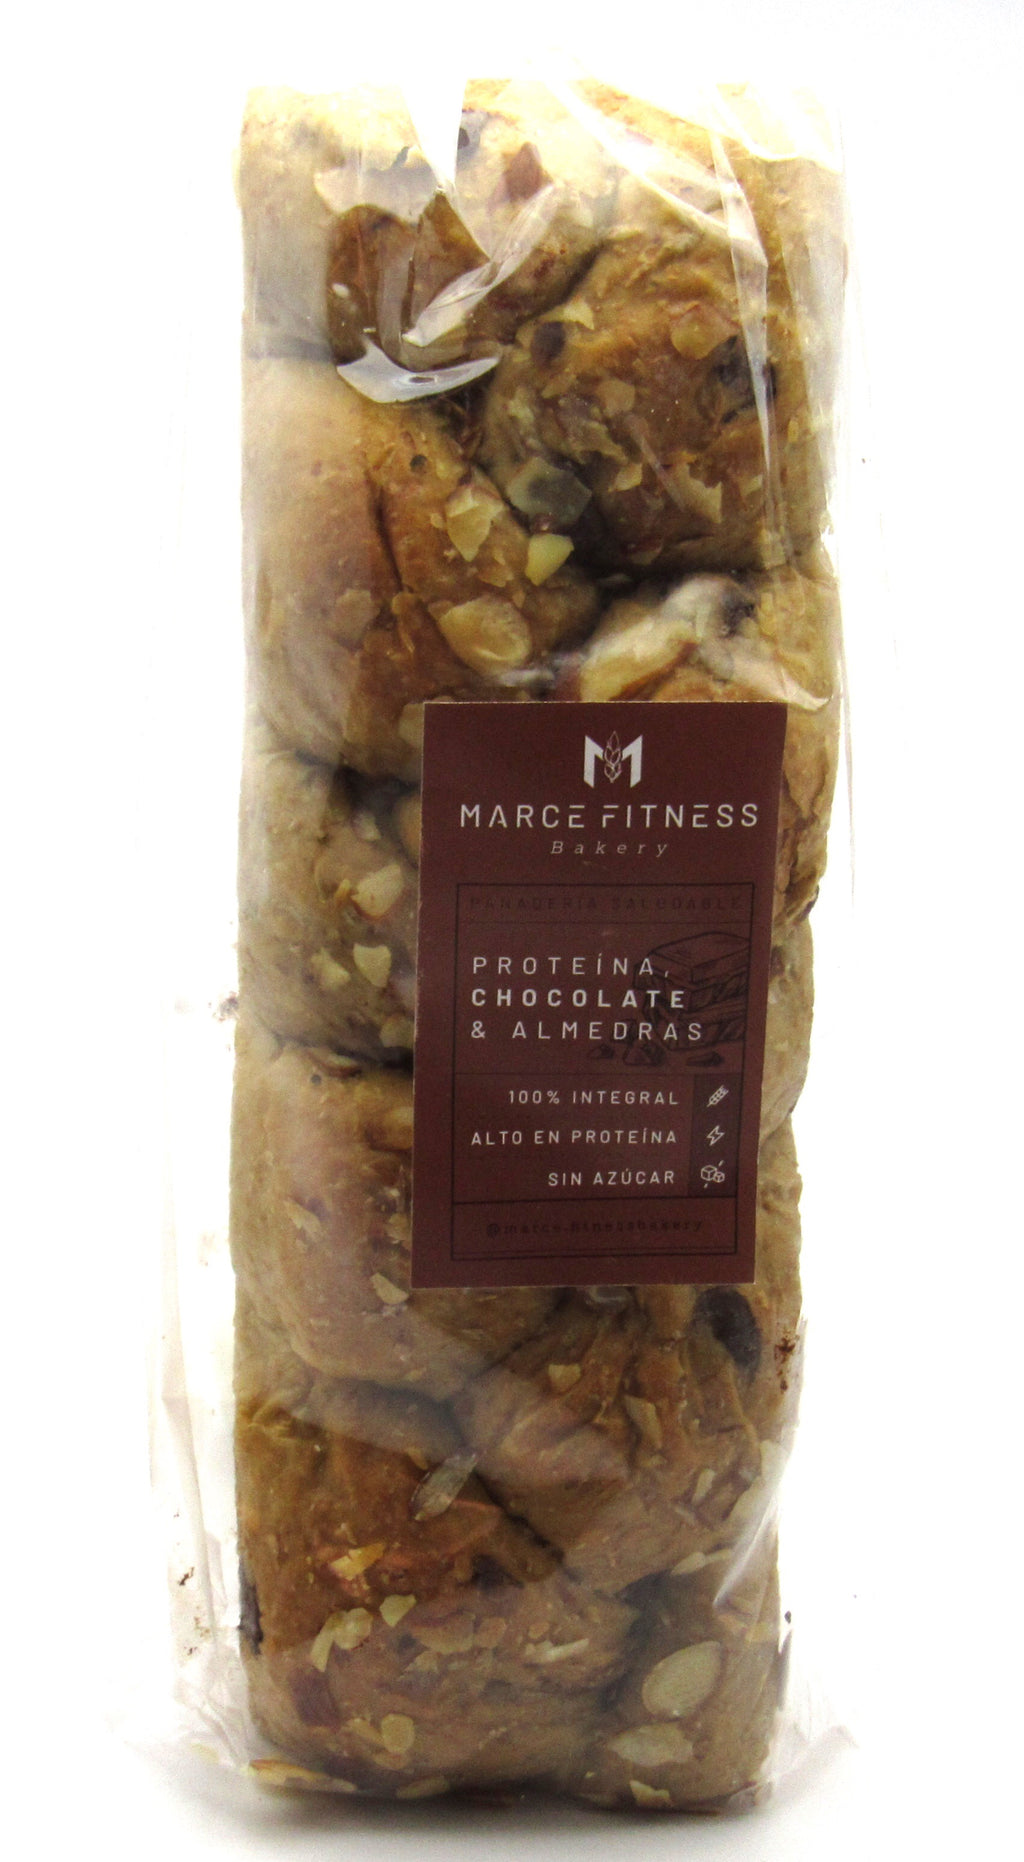 Pan de Proteína (MARCE FITNESS) Chocolate